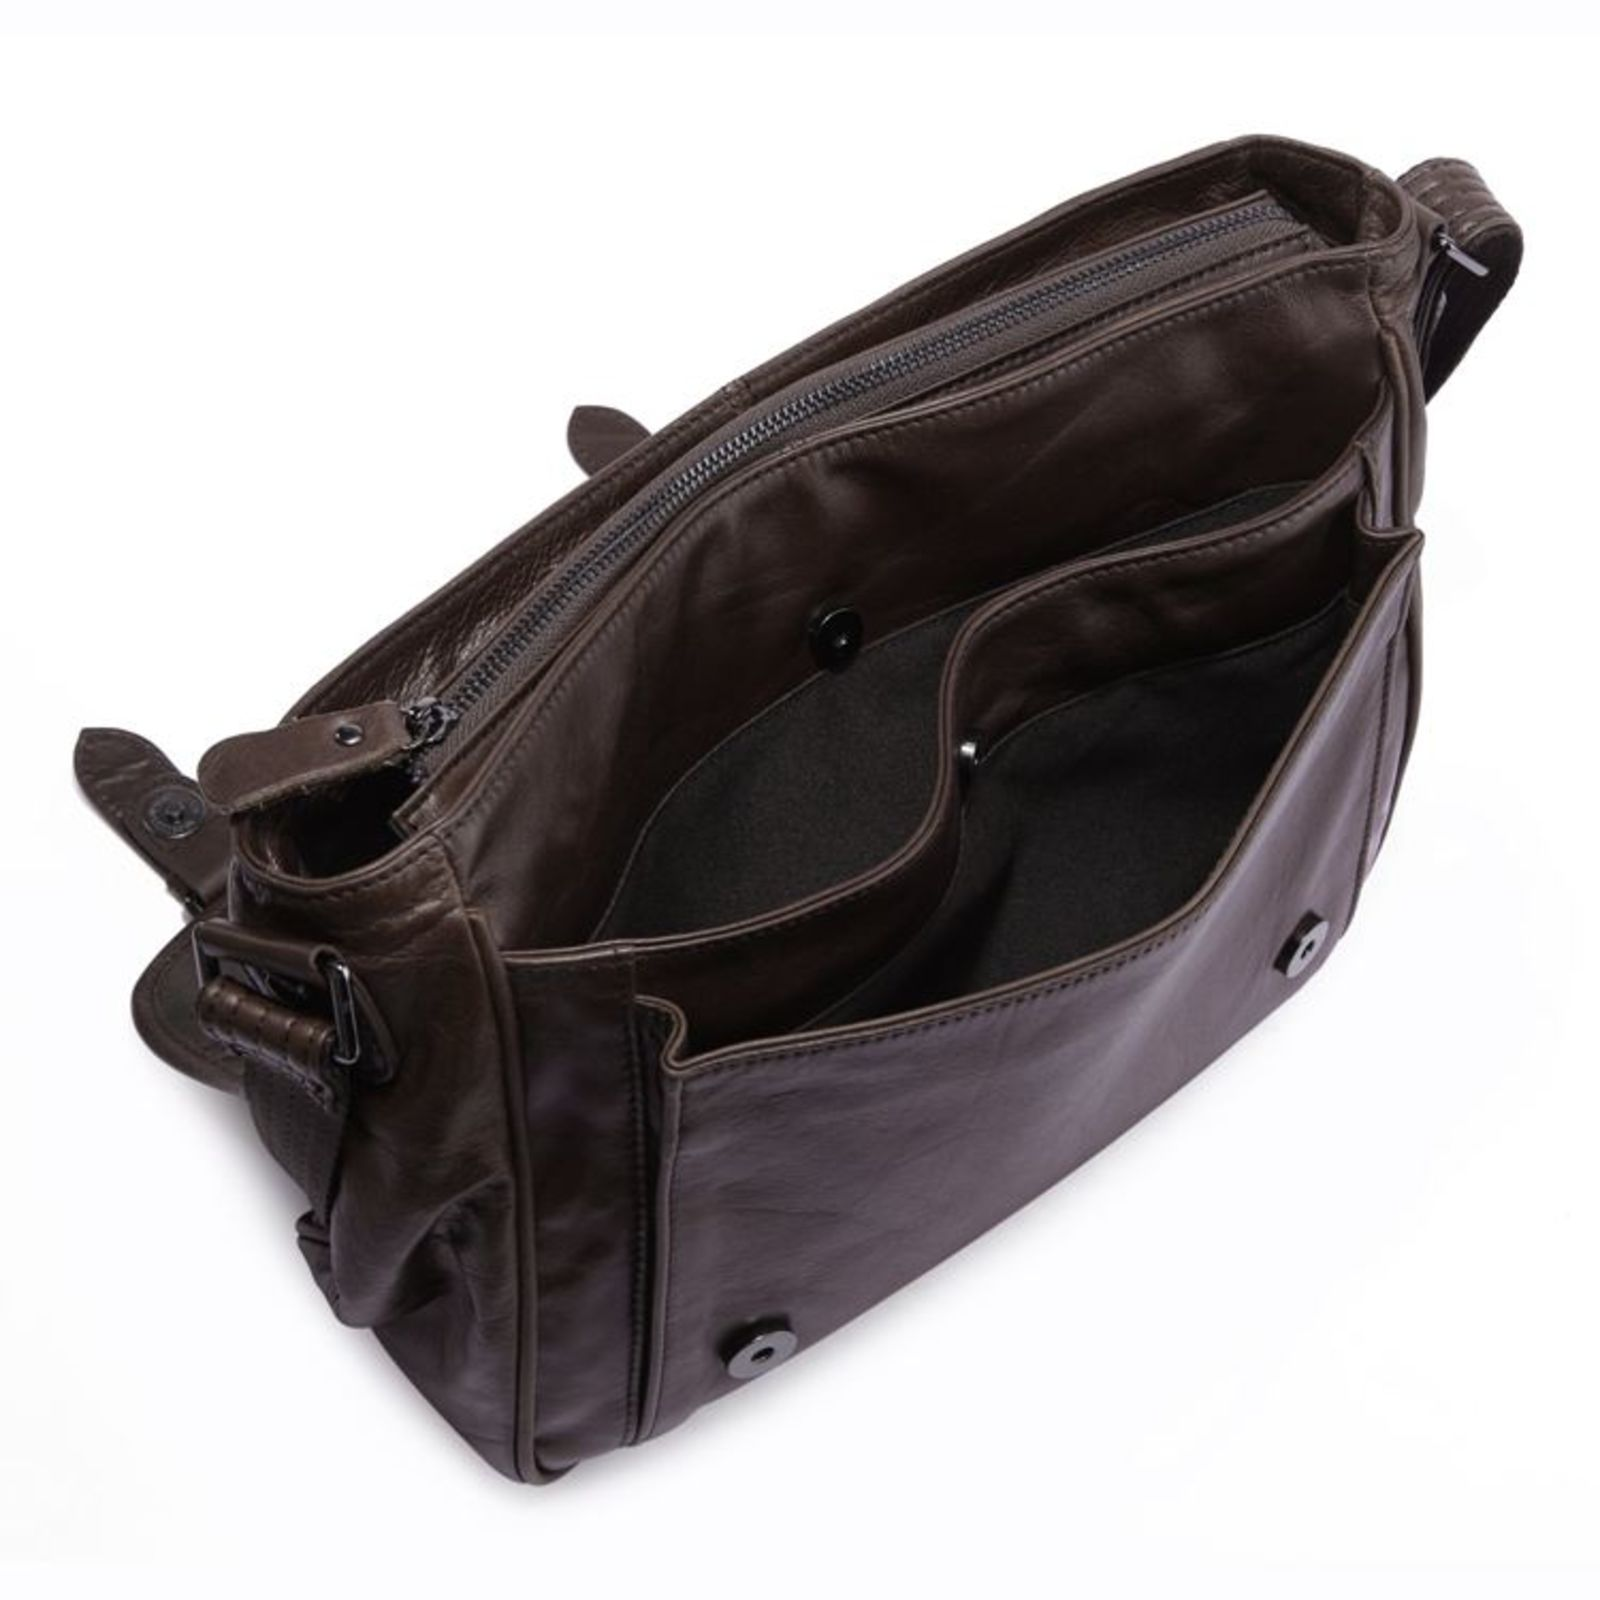 Bolsos Overly Leather Bag Delton Messenger WTBqF